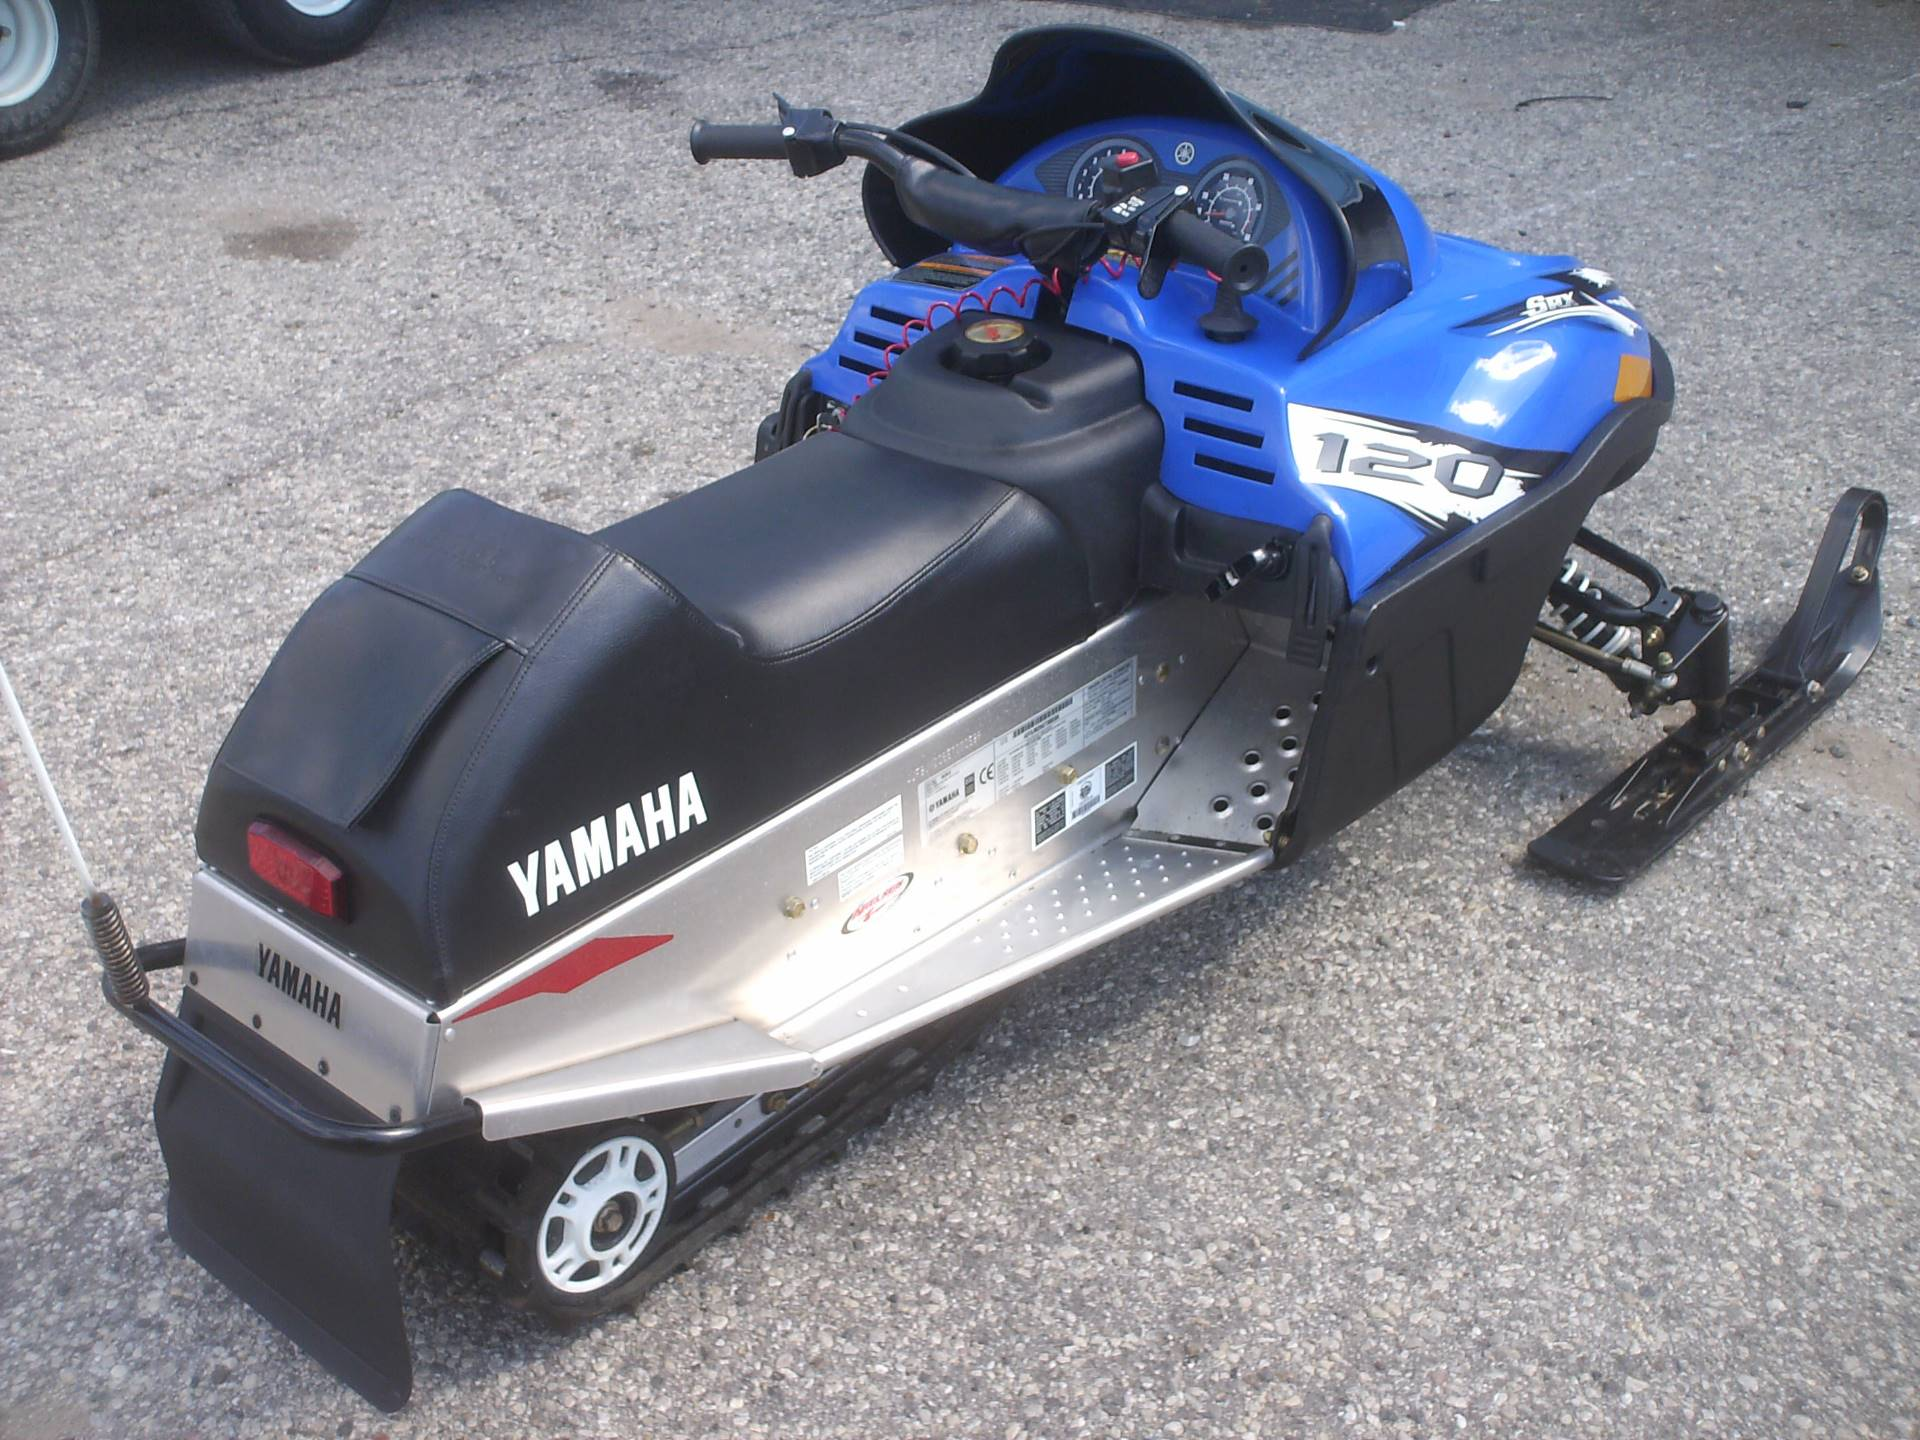 2014 Yamaha SRX® 120 in Mukwonago, Wisconsin - Photo 6